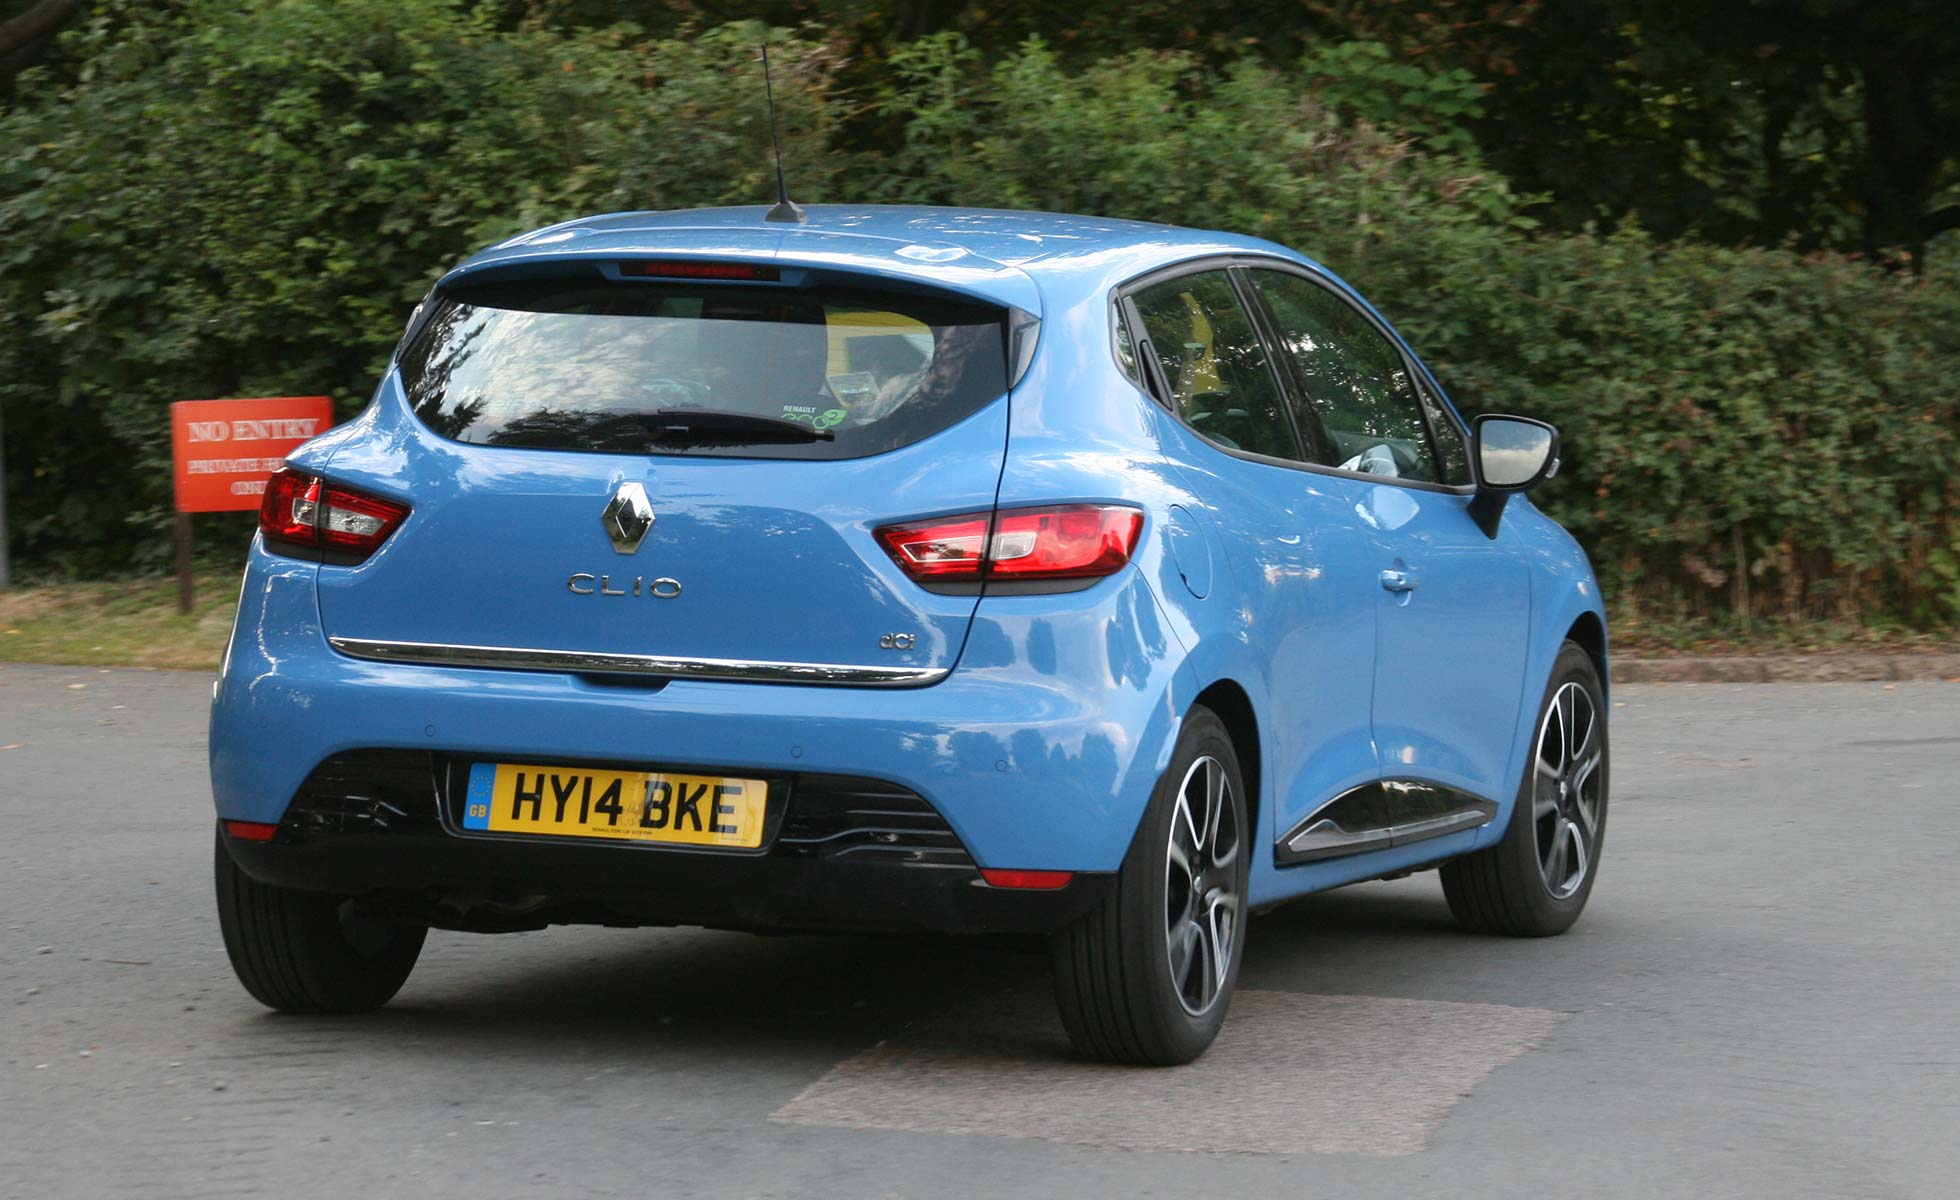 Renault Clio ECO long-term review: 2014 test diary | Motoring Research